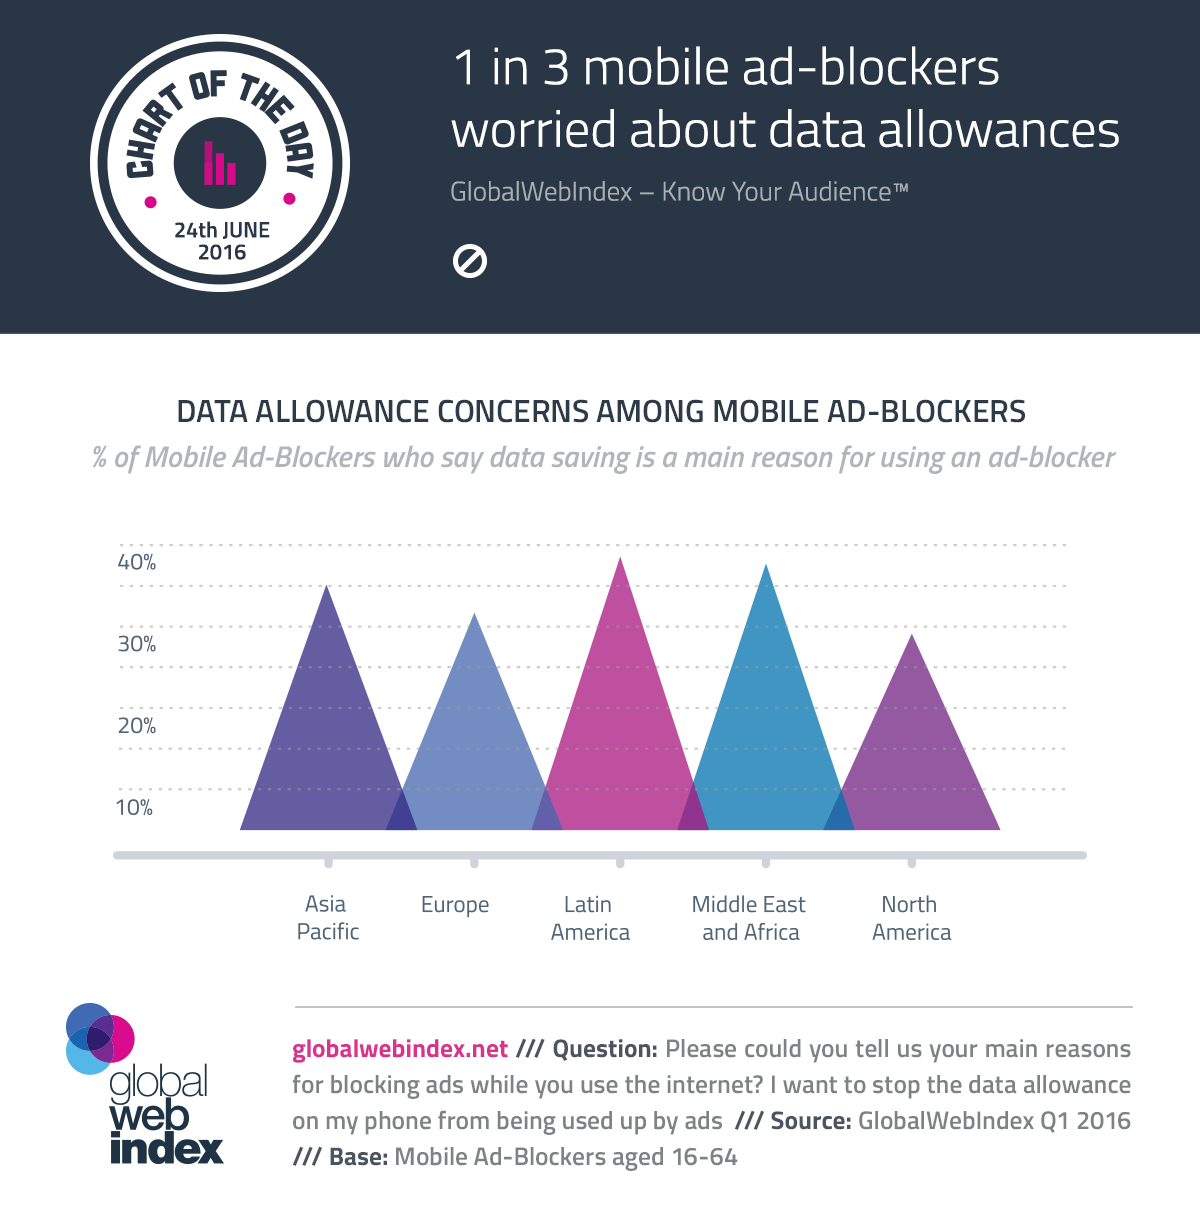 1 in 3 mobile ad-blockers worried about data allowances